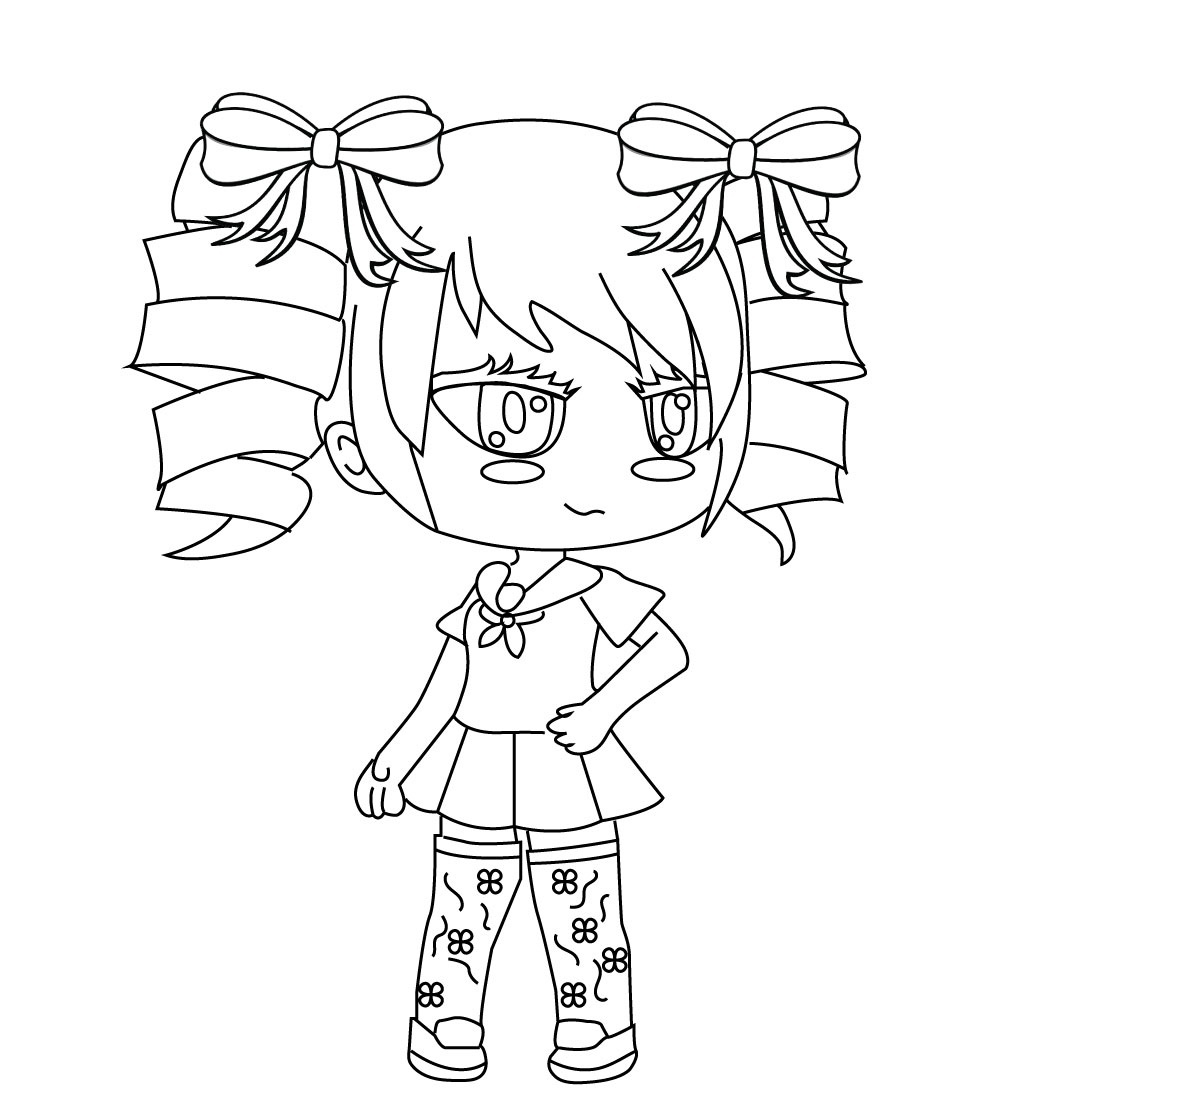 Schoolgirl with curly long hair Coloring Page